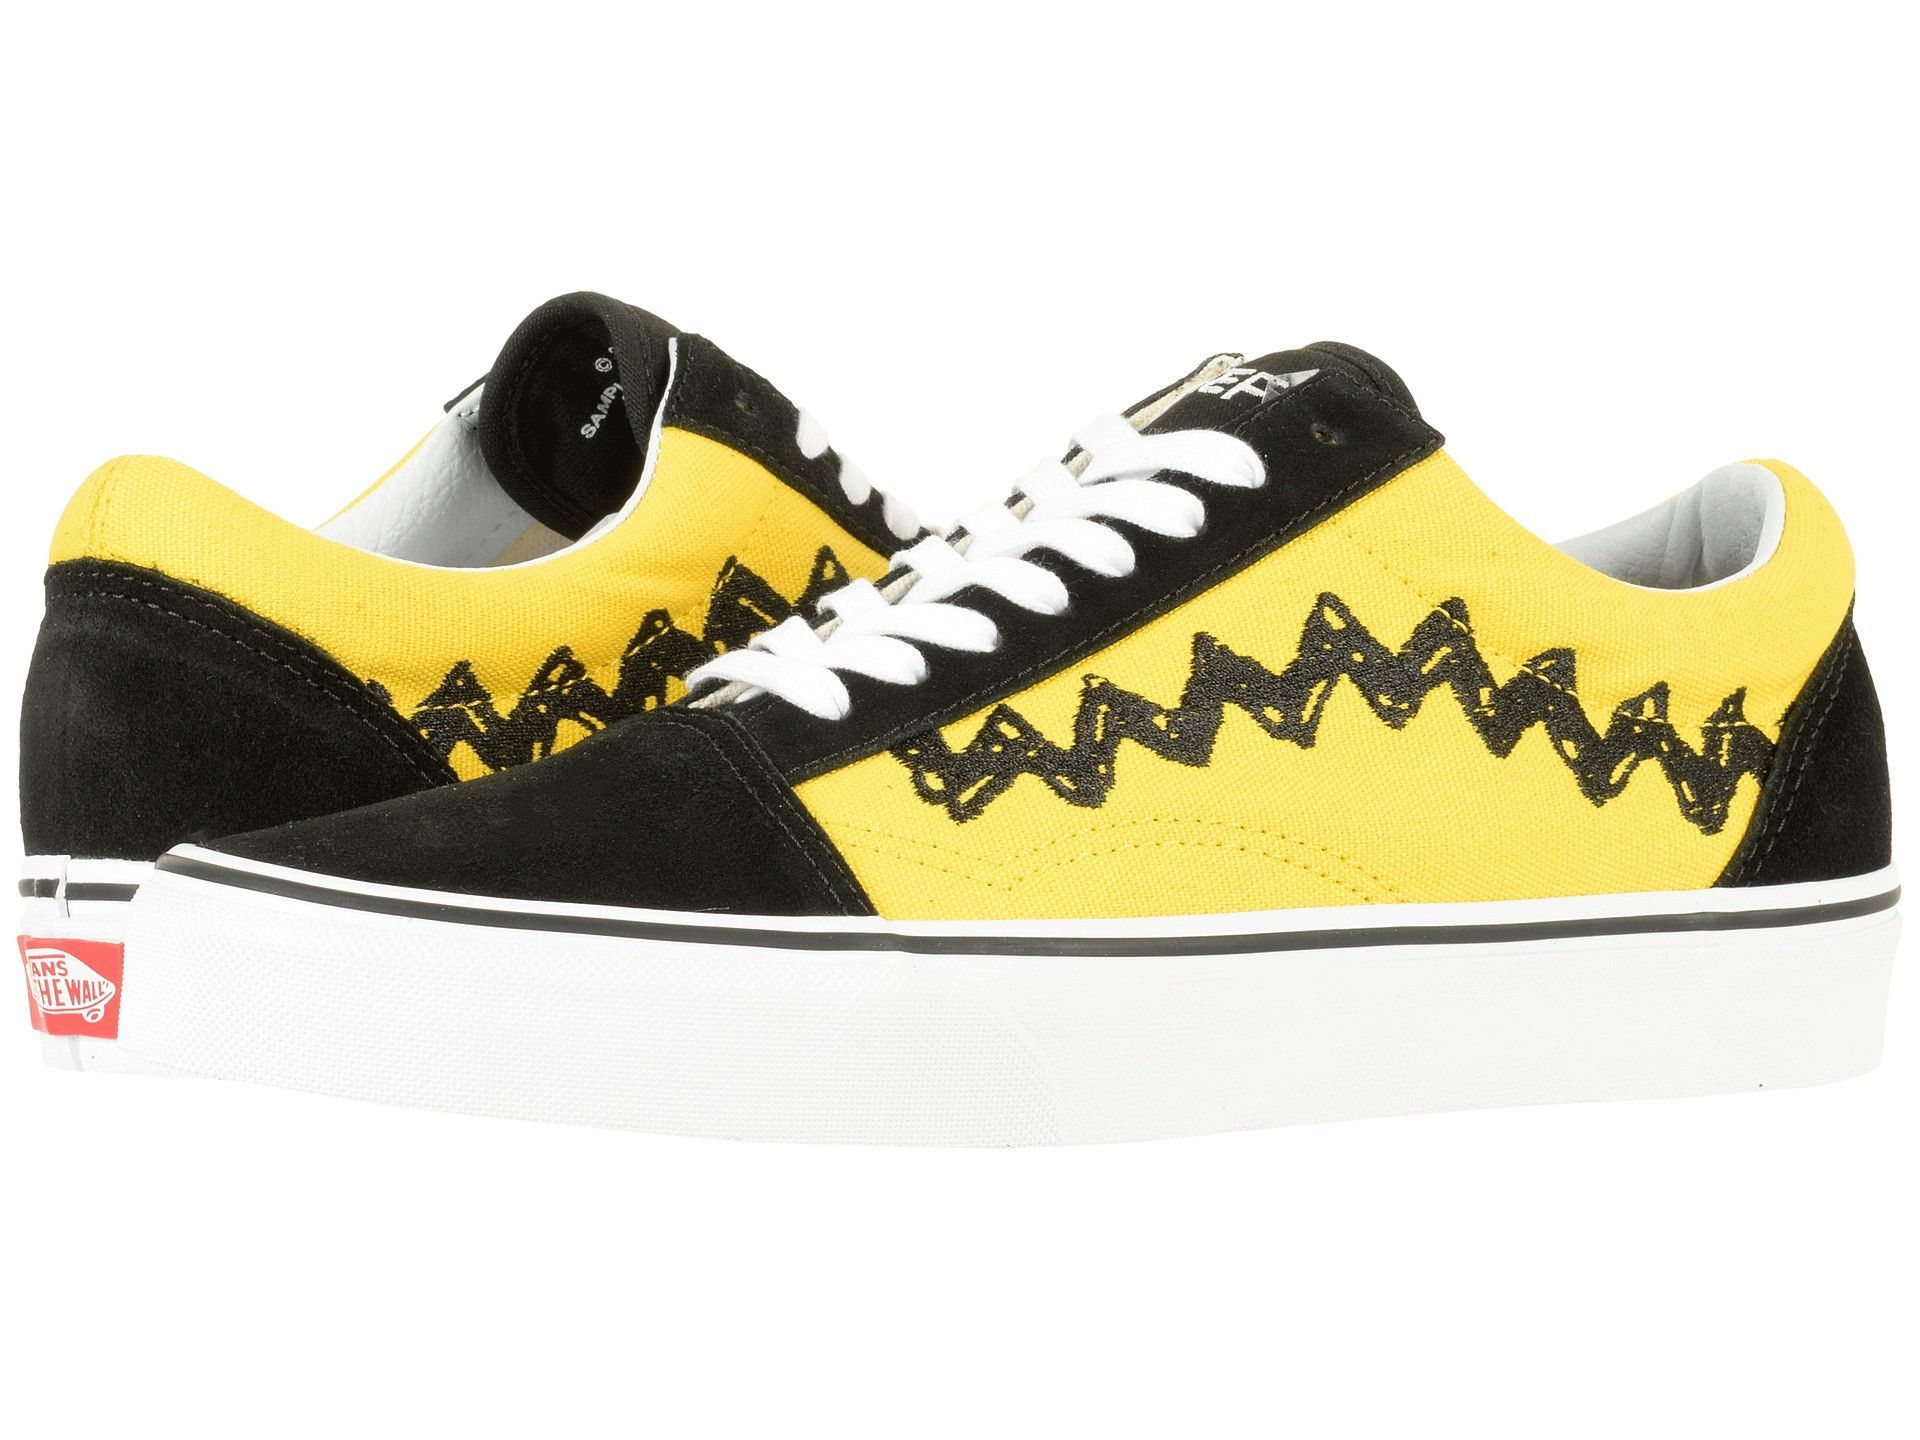 Vans Old Skool Peanuts in Charlie Brown & Black from